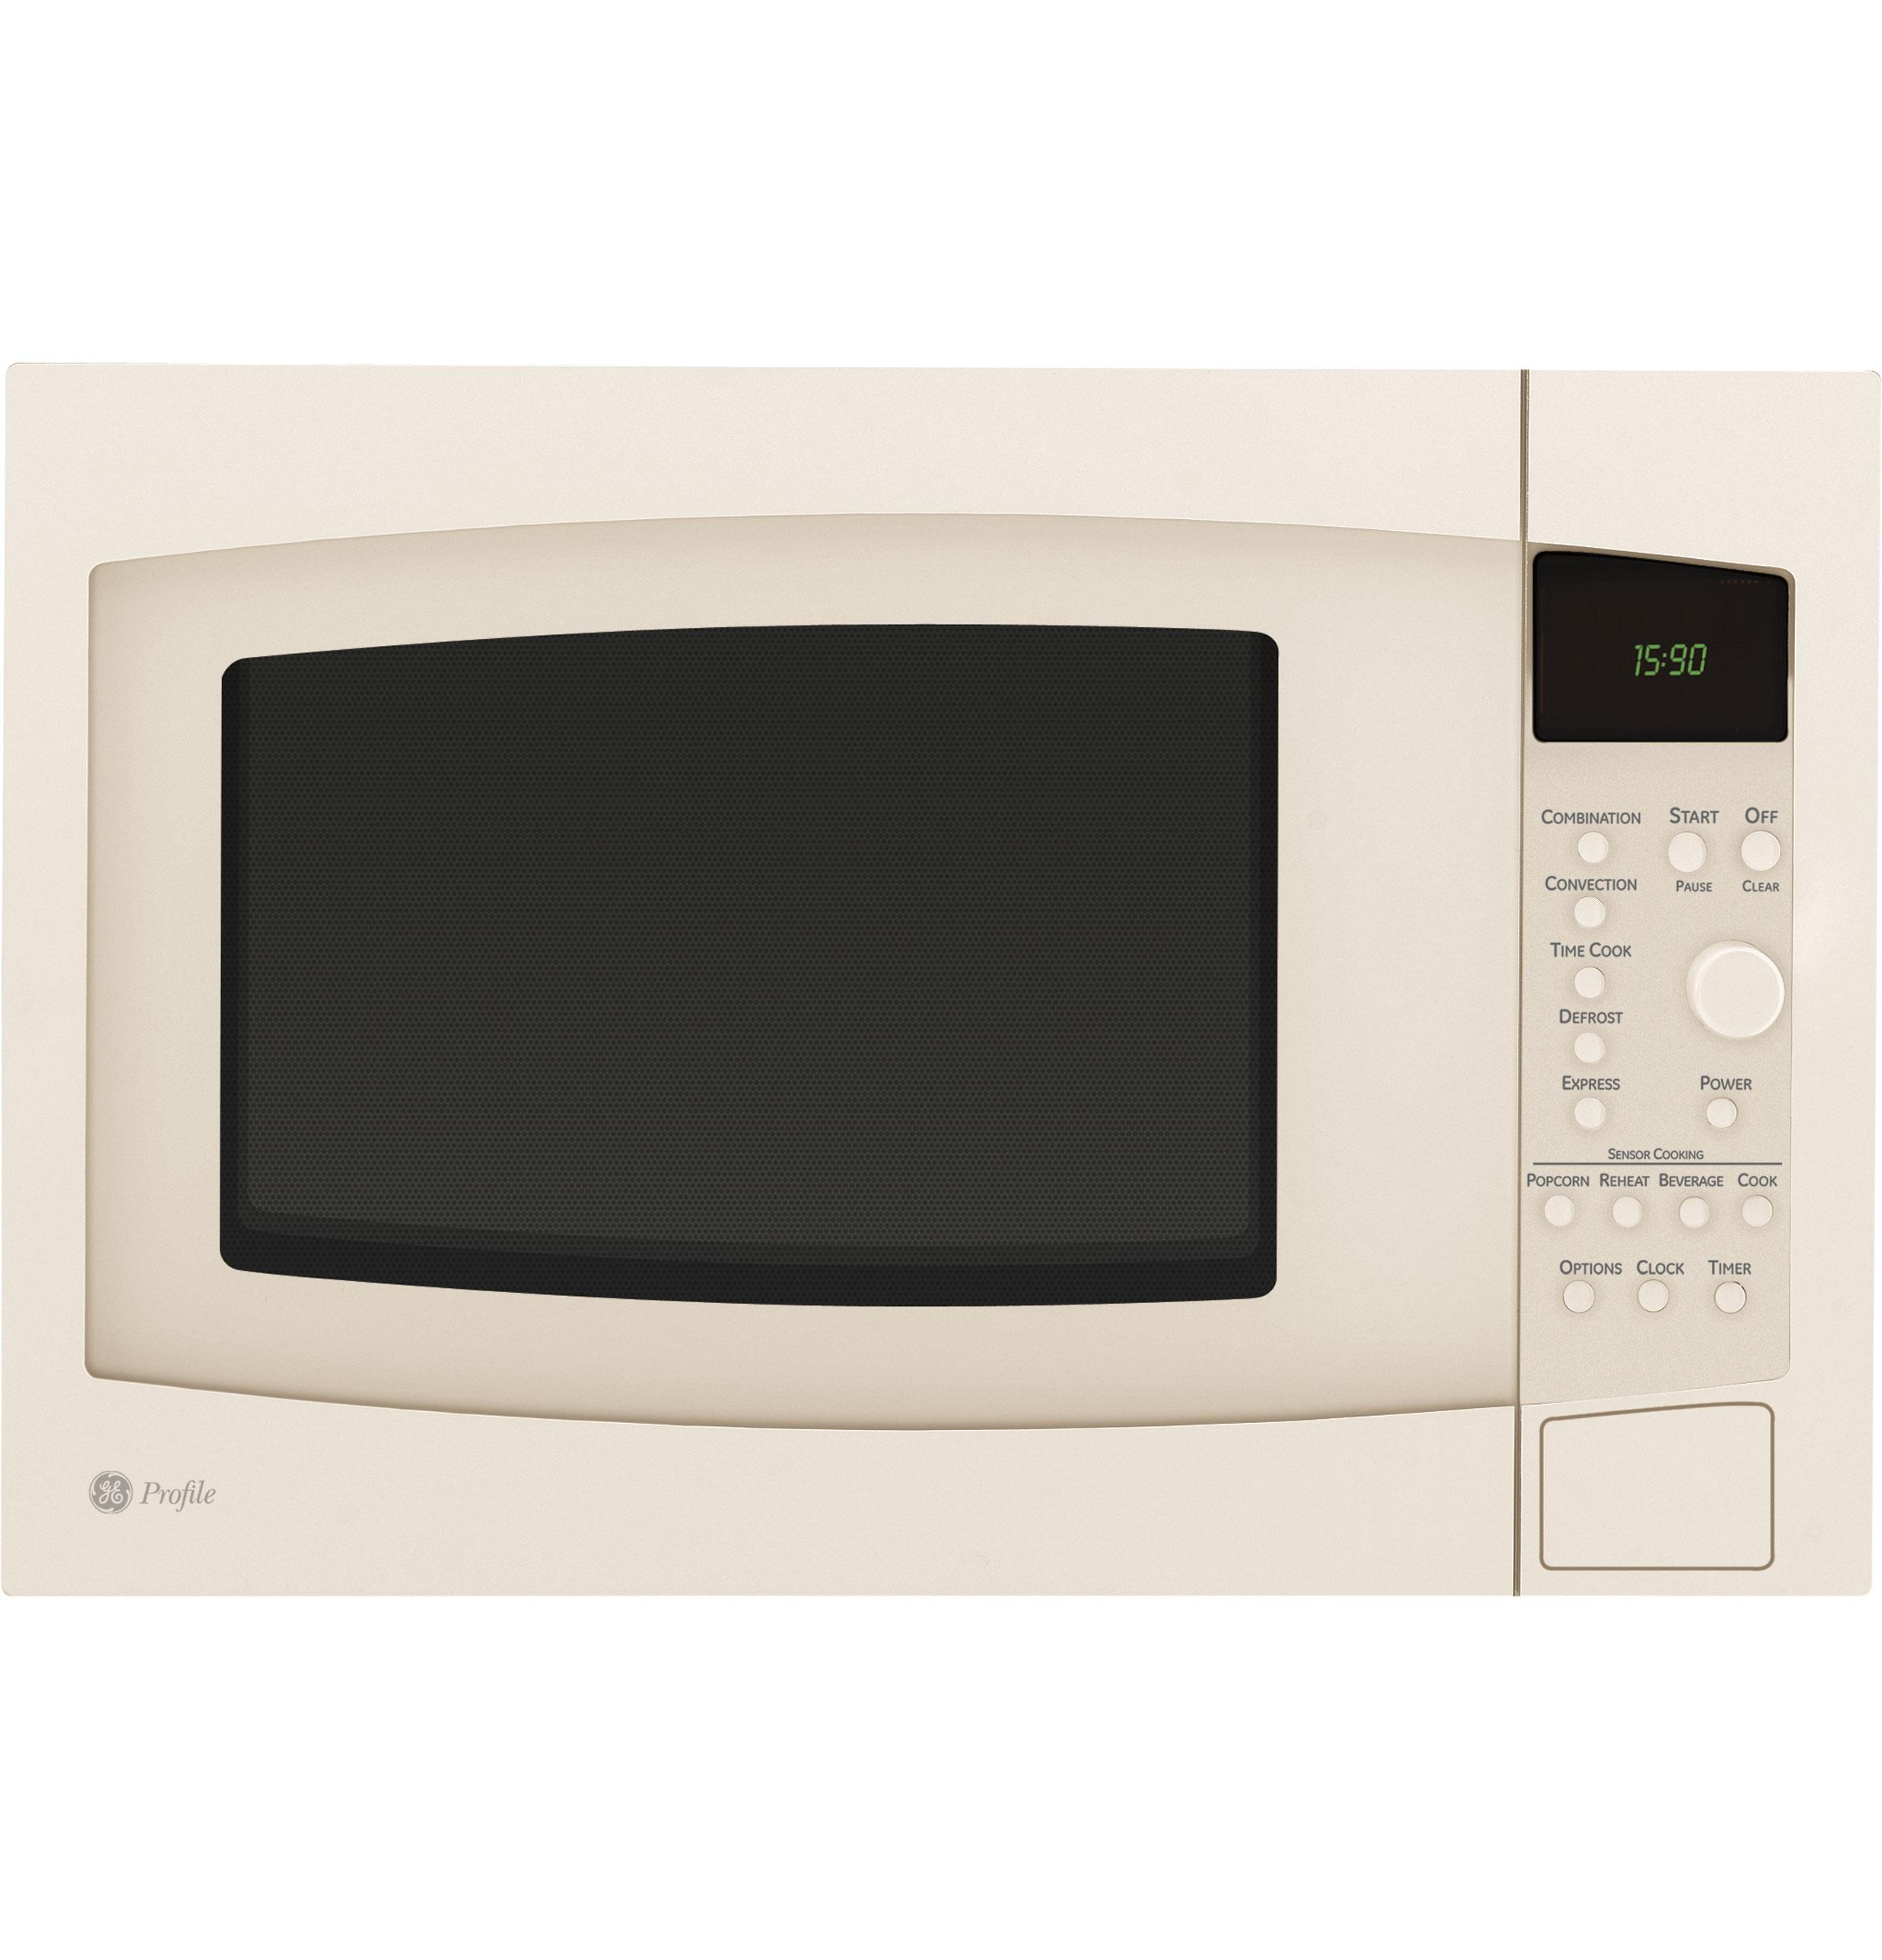 Countertop Microwave In Bisque Color : PEB1590 Ge peb1590 Profile Countertop Microwaves